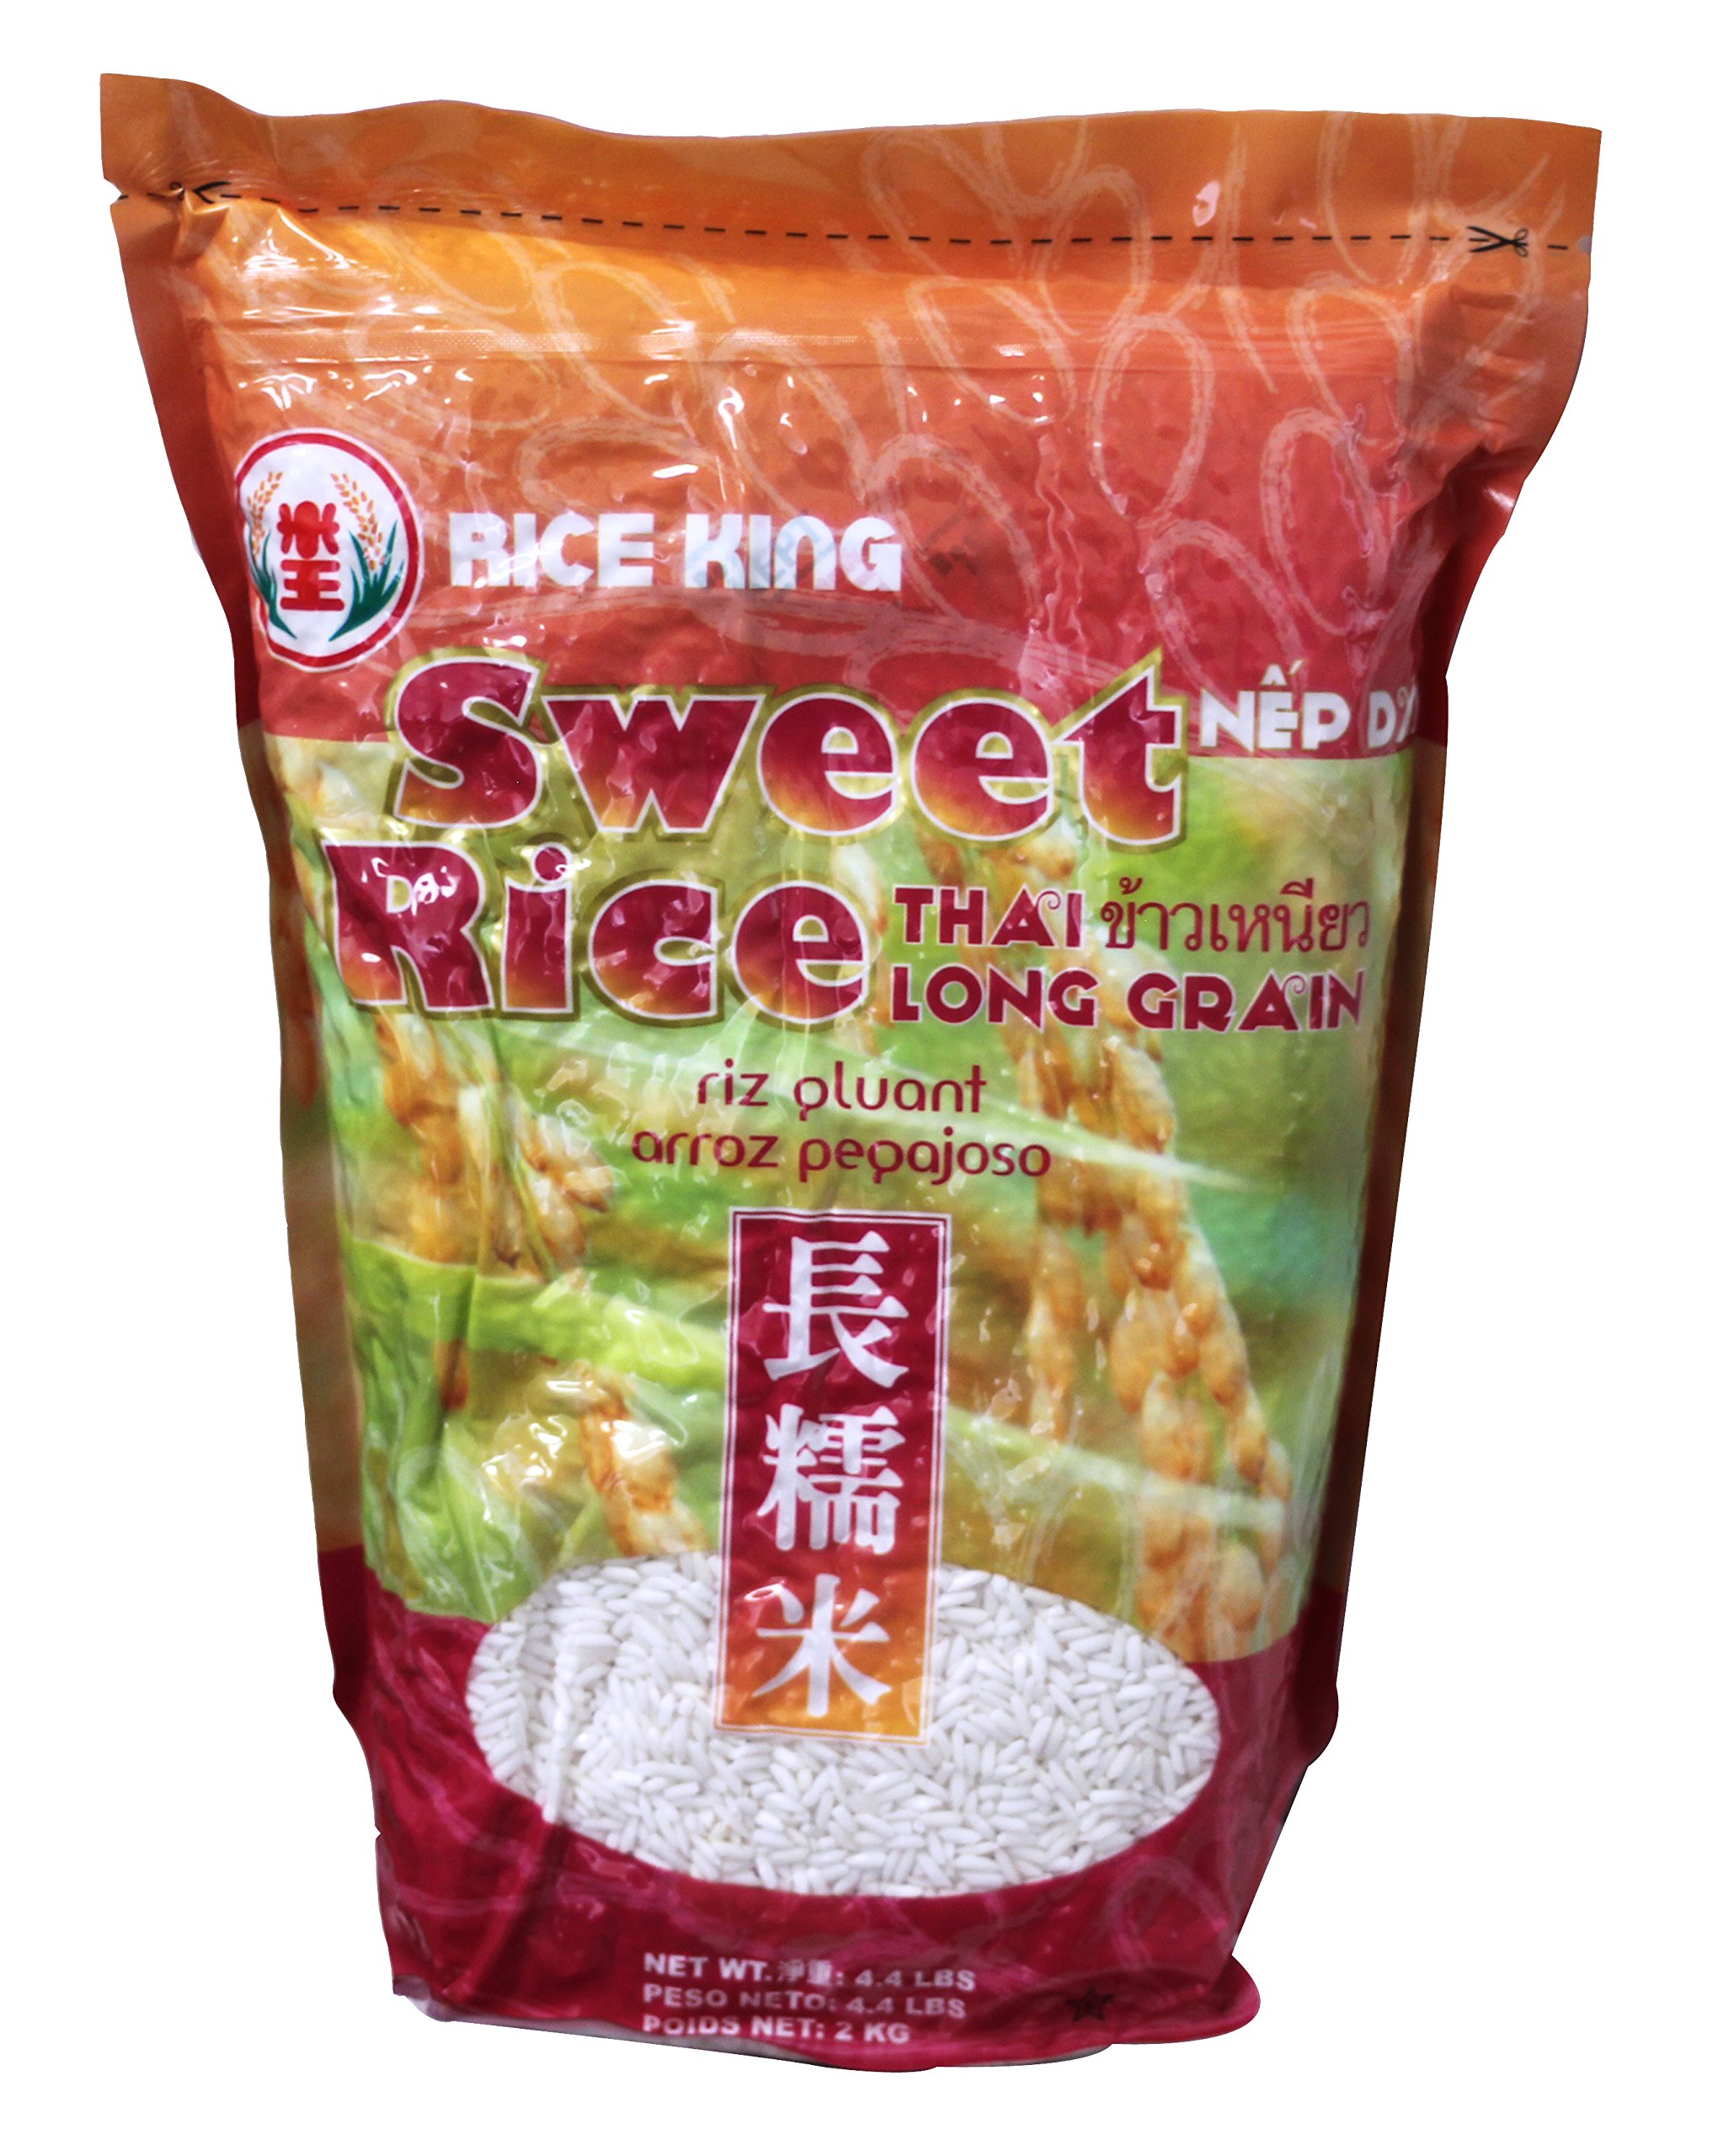 米王 长糯米 Rice King Thai Sweet Rice -long grain 4.4lbs